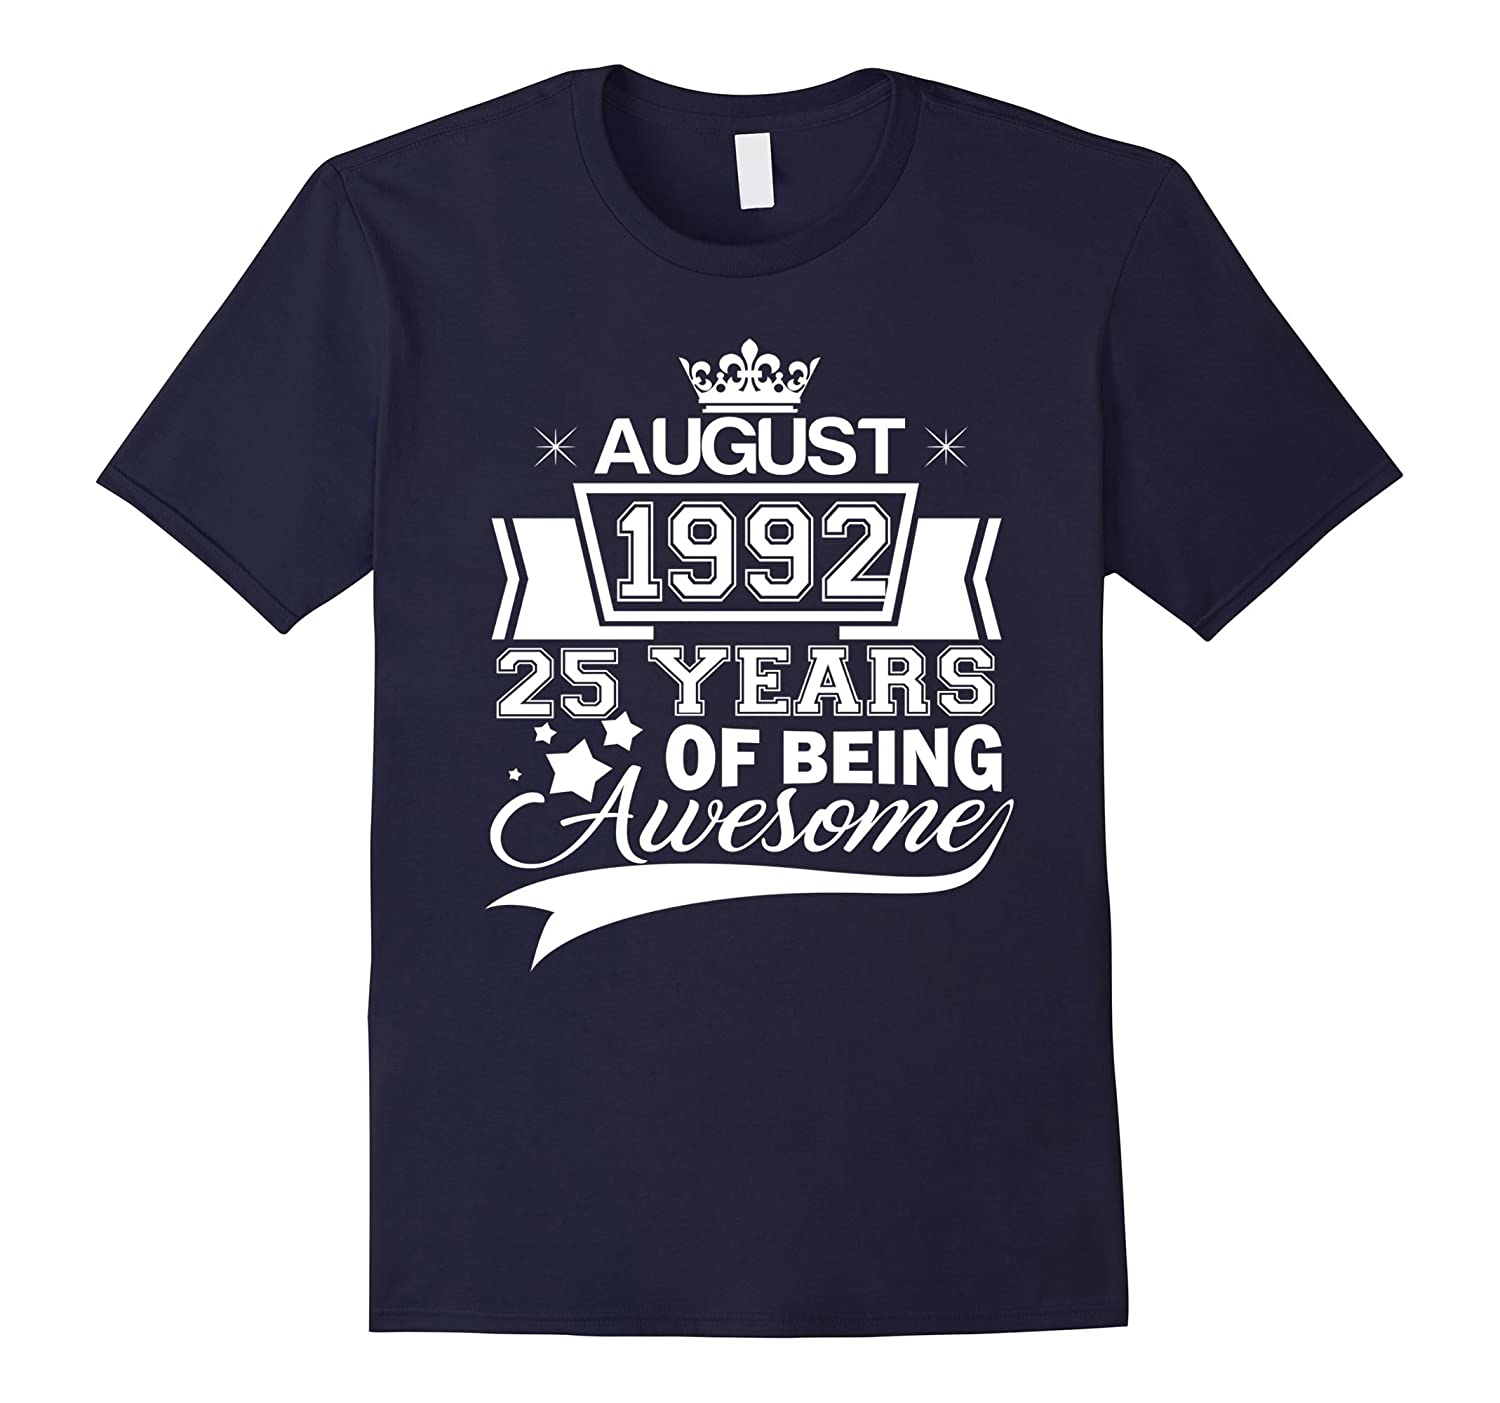 25 years of being awesome - Born in August 1992 T-Shirt-CL